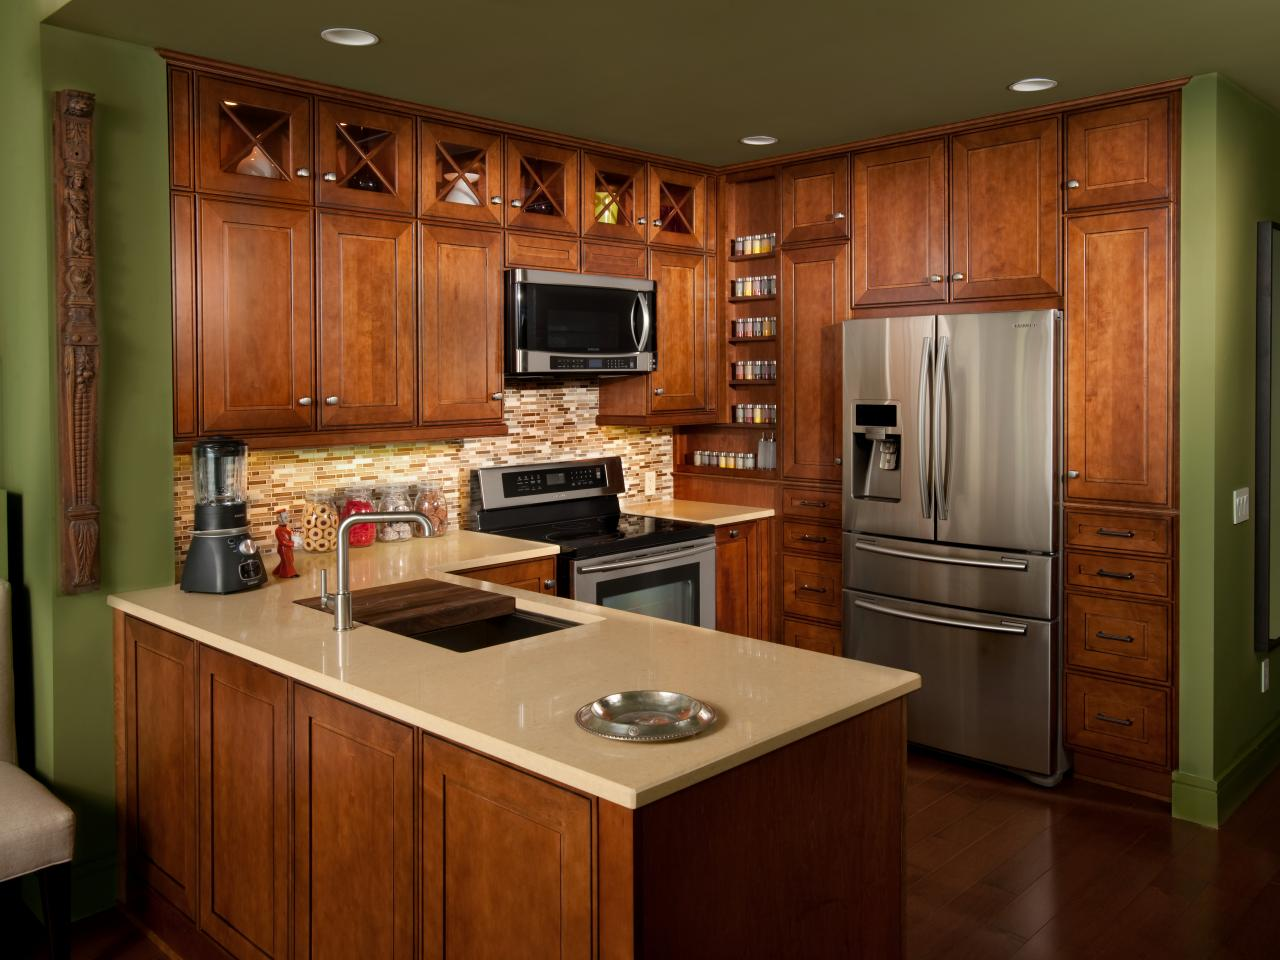 Small kitchen layouts pictures ideas tips from hgtv hgtv for Kitchen cabinets for small kitchen